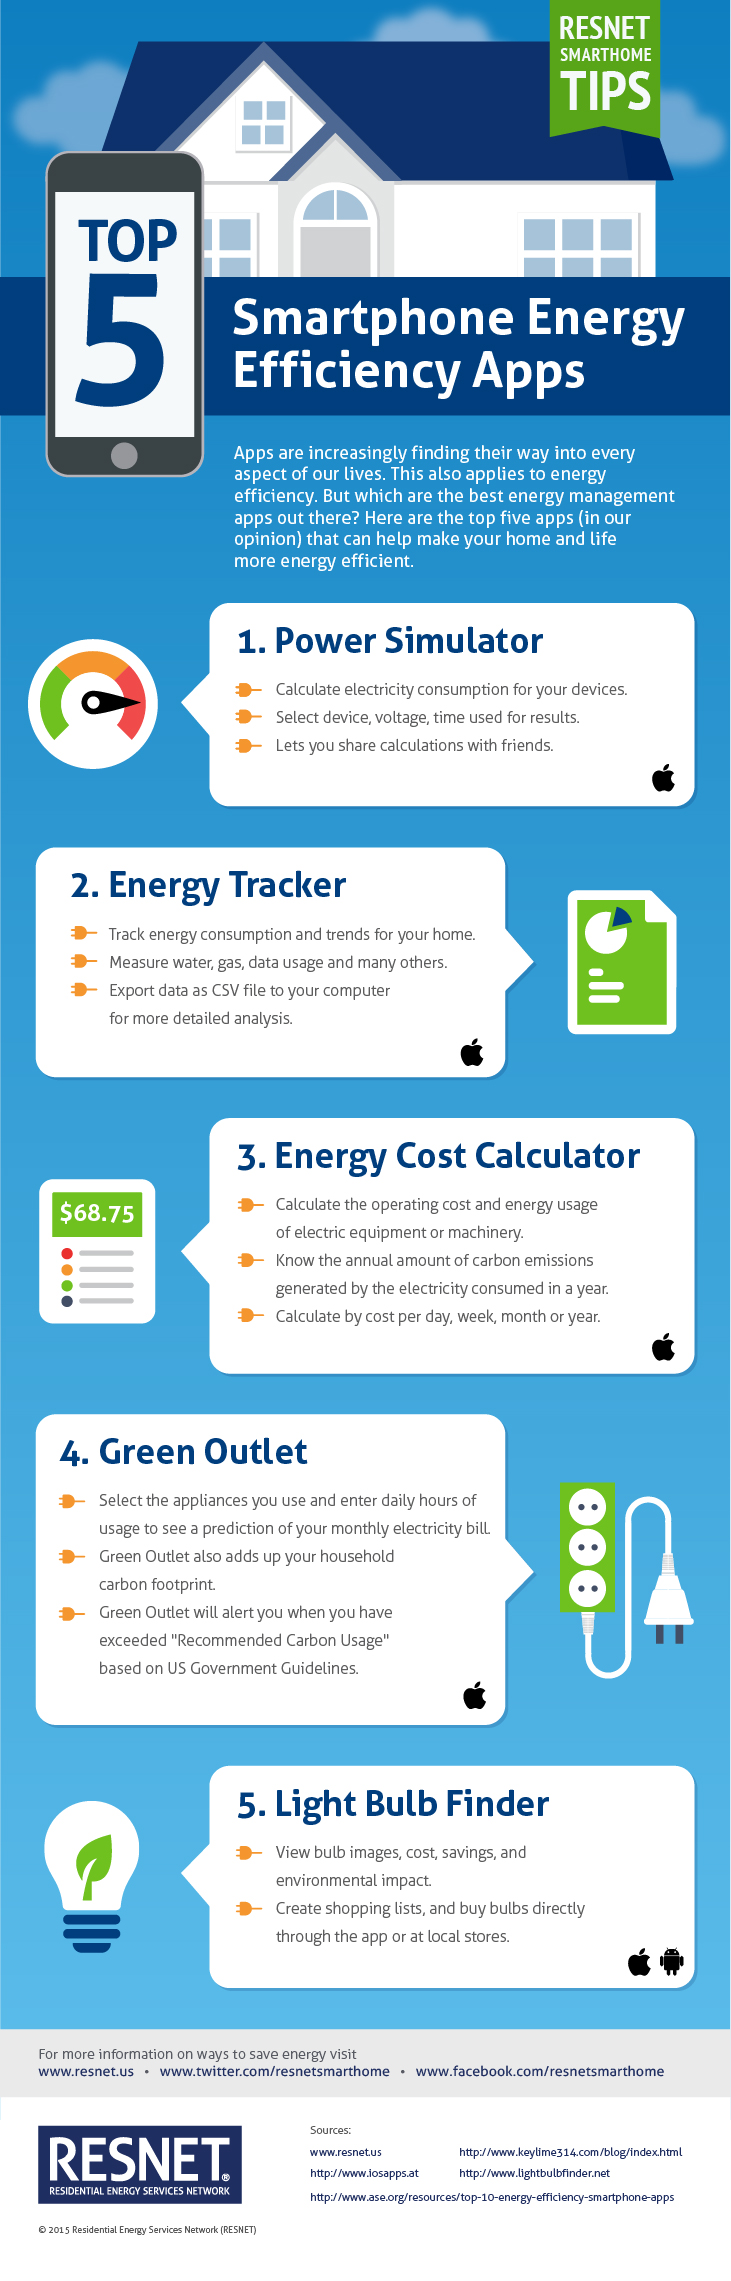 Top 5 Energy Efficiency Apps Articles Resnet